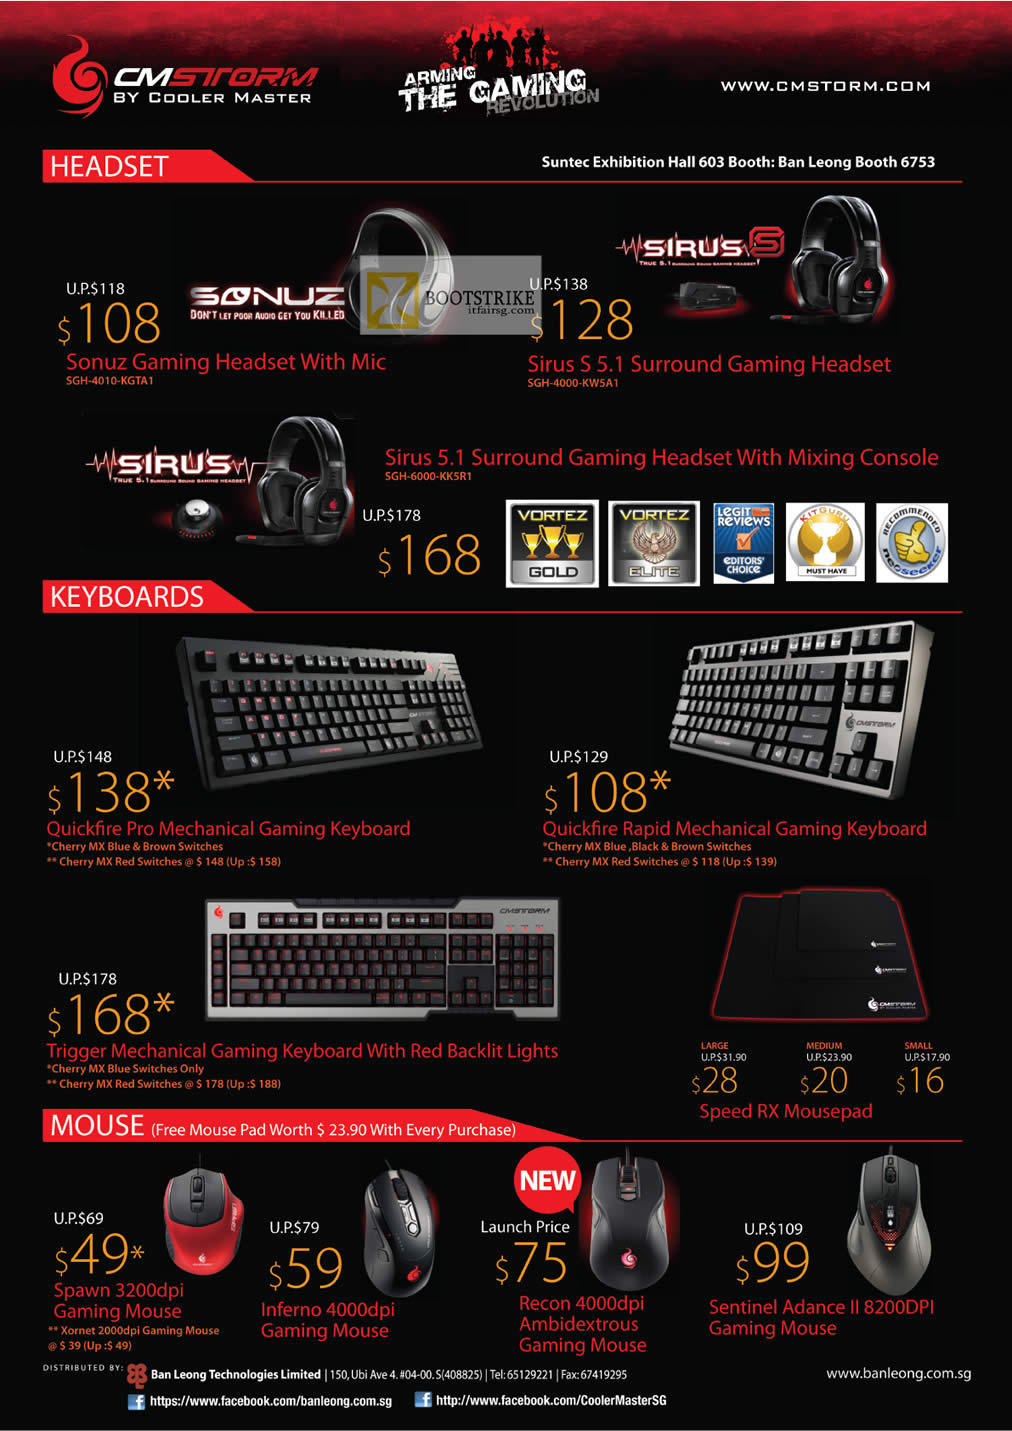 COMEX 2012 price list image brochure of Ban Leong CMStorm Cooler Master Headset Sonuz, Sirus S 5.1, Keyboard Quickfire Pro, Rapid, Trigger Mechanical, Mouse Spawn, Inferno, Recon Ambidextrous, Sentinel Advance II